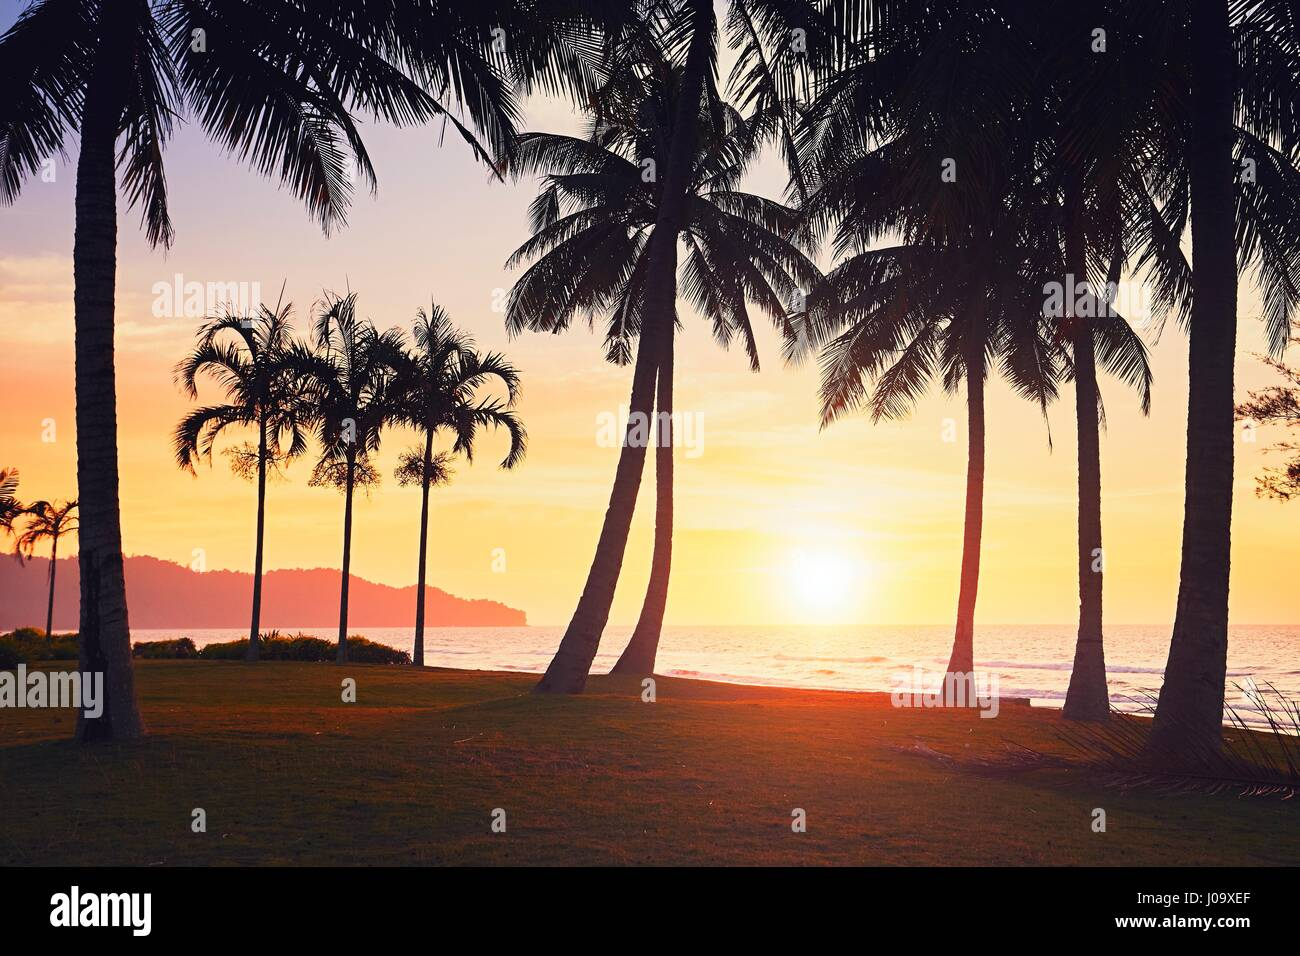 Silhouette of the palm trees on the beach at the amazing sunset. Summer vacation and  travel concept. Island of - Stock Image